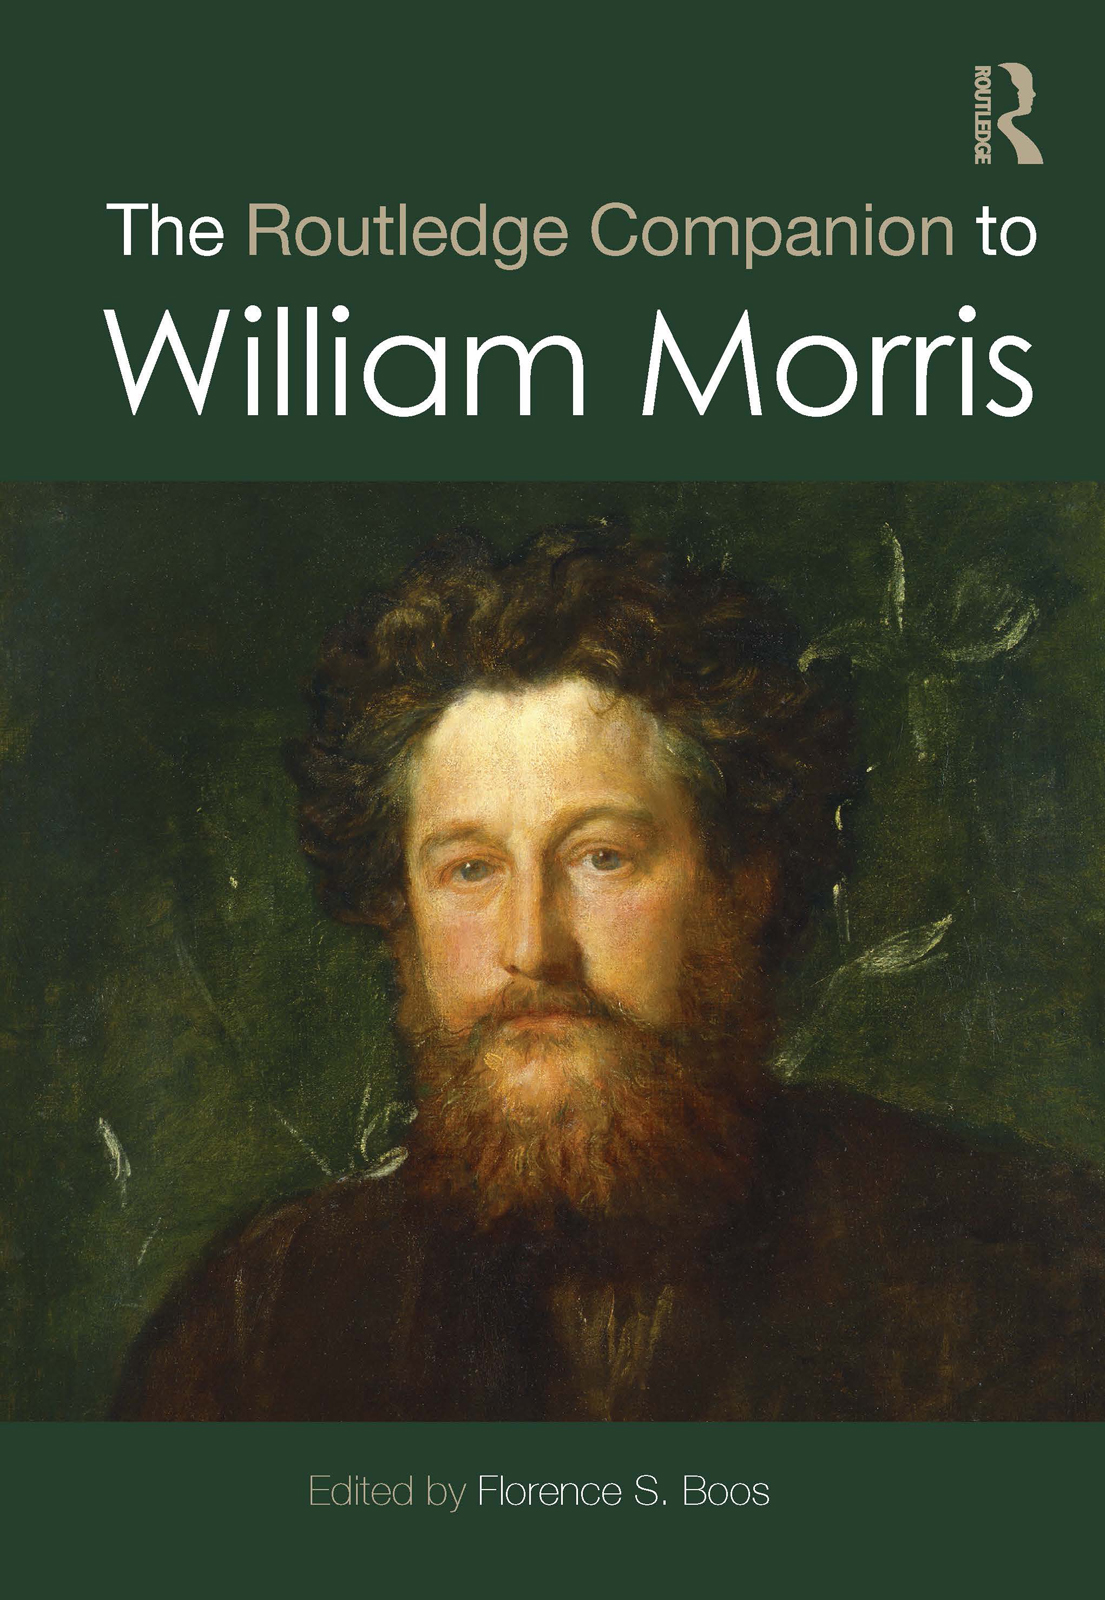 The Routledge Companion to William Morris